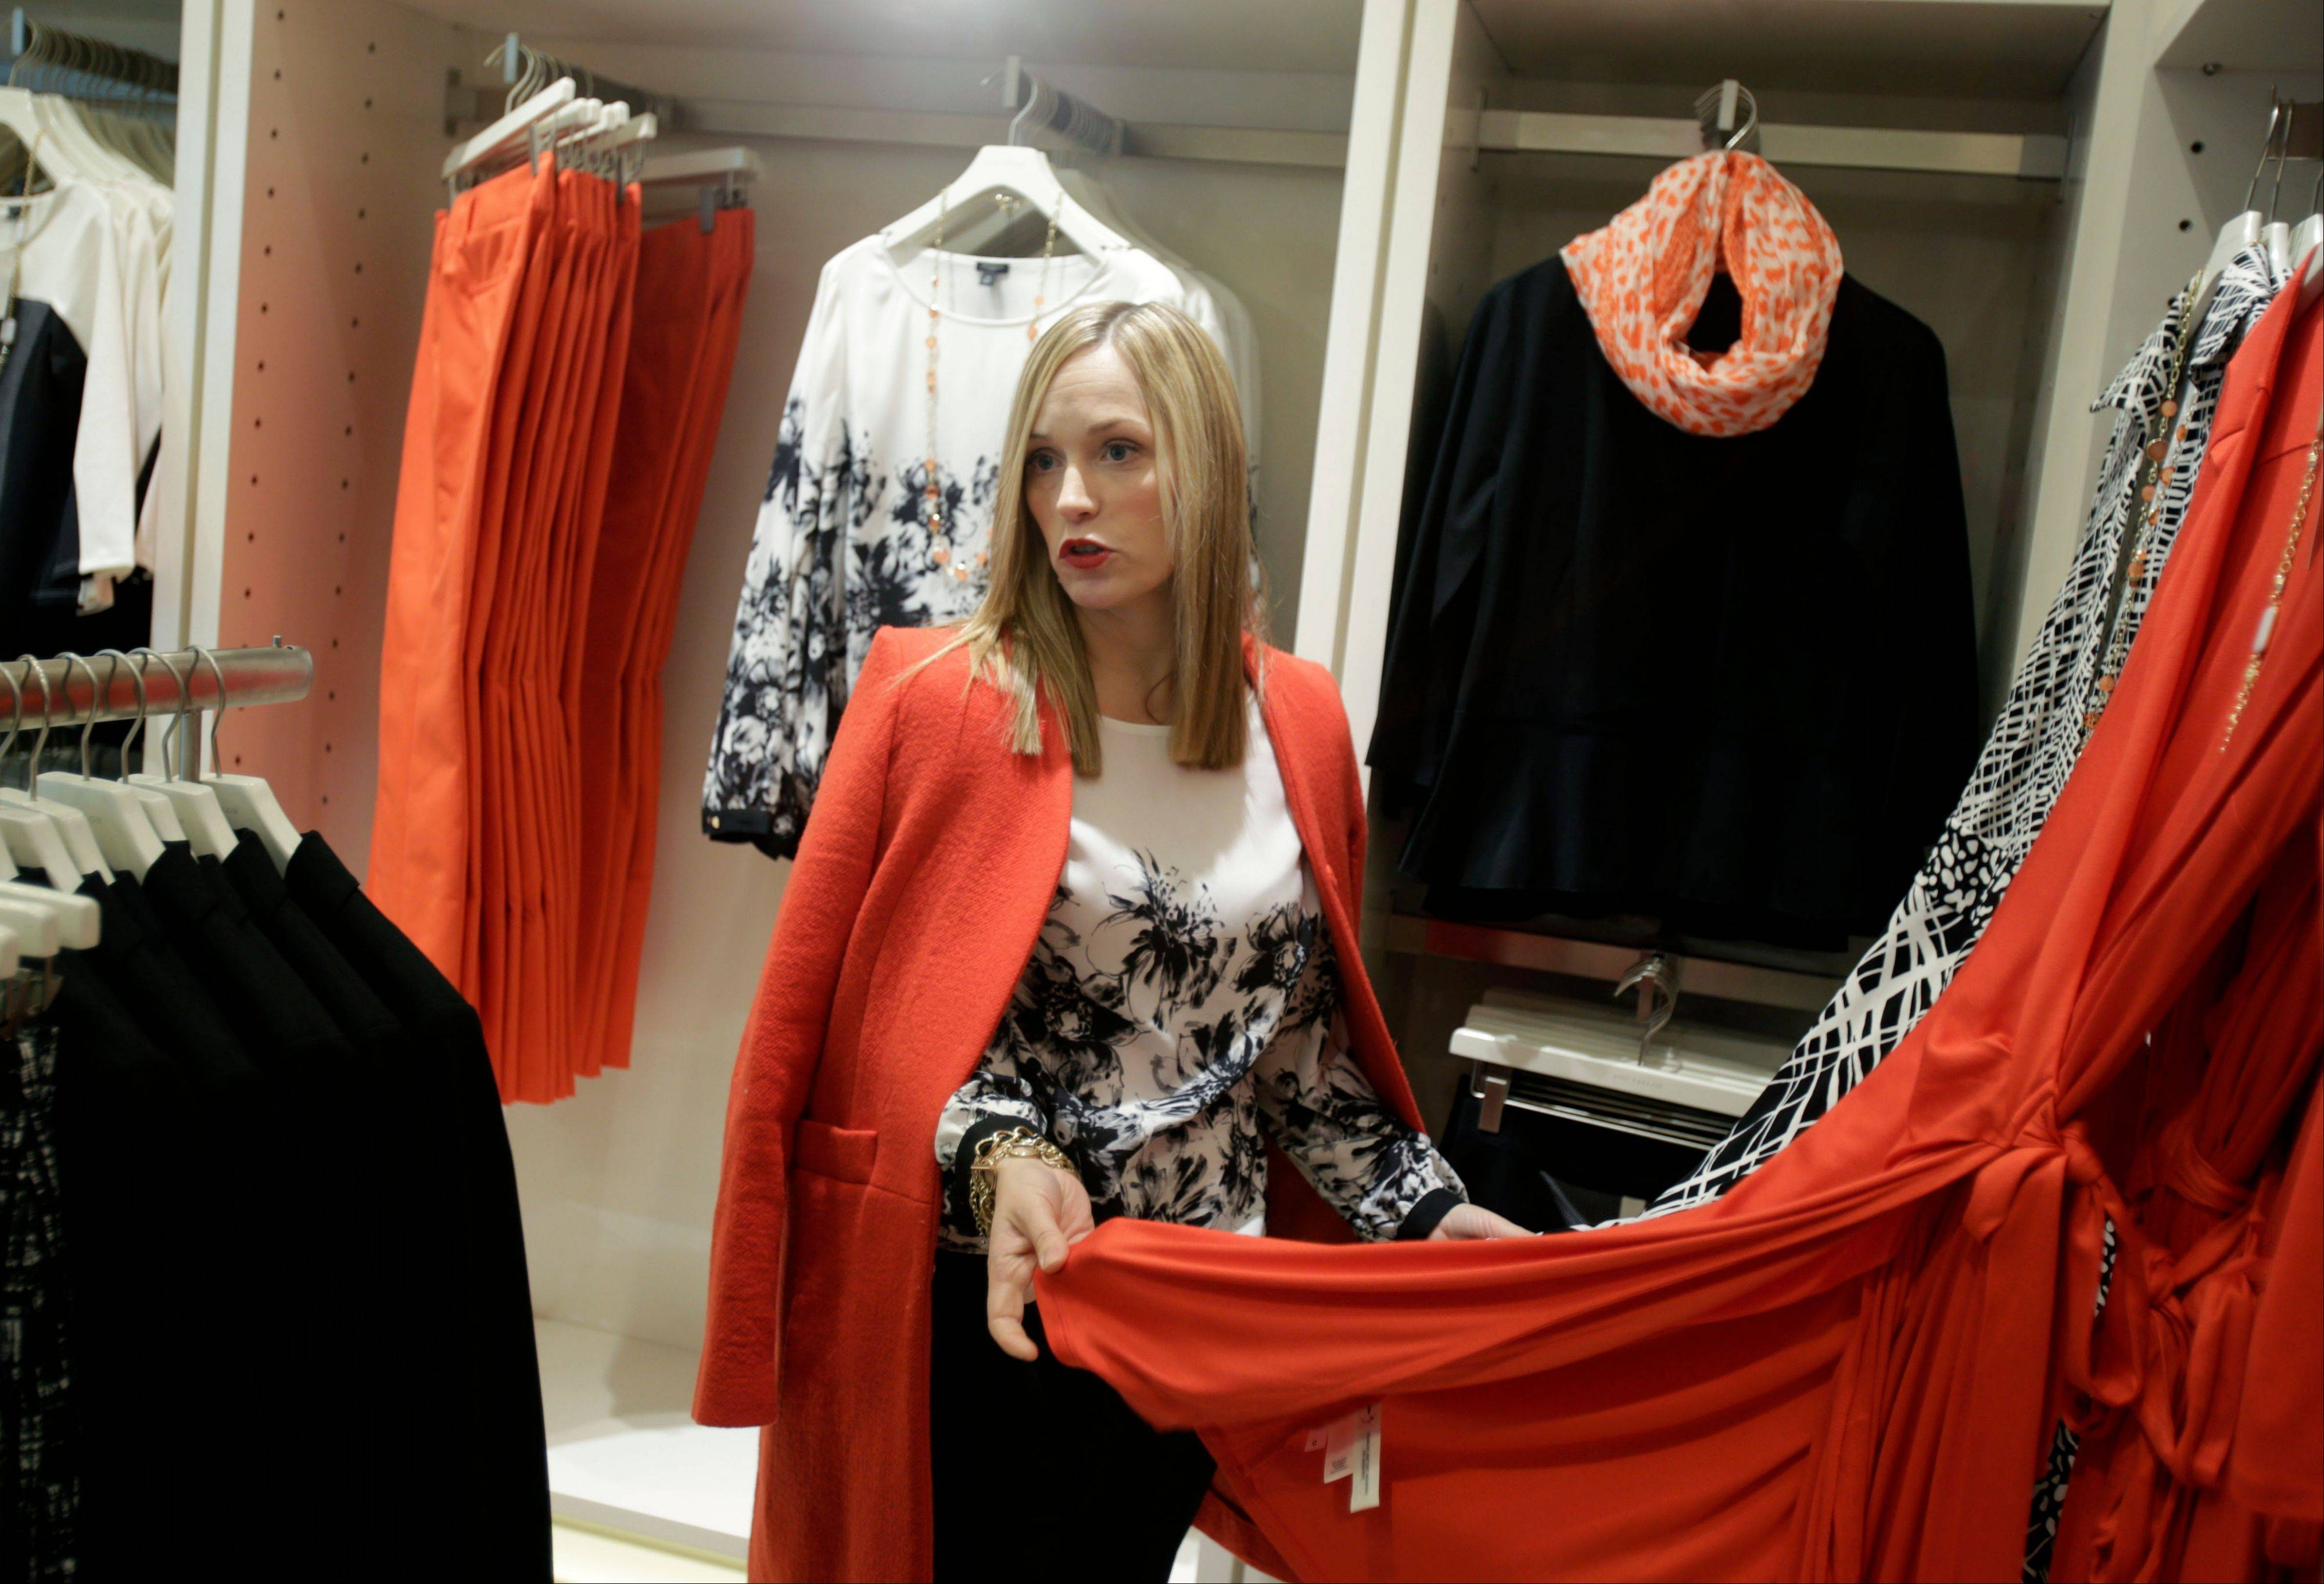 Lisa Axelson, creative director for Ann Taylor, discusses fashion at Ann Taylor's renovated location in The Westchester shopping mall in White Plains, N.Y. She pointed out the styles that she believes are the cornerstone of a woman's wardrobe in 2013.